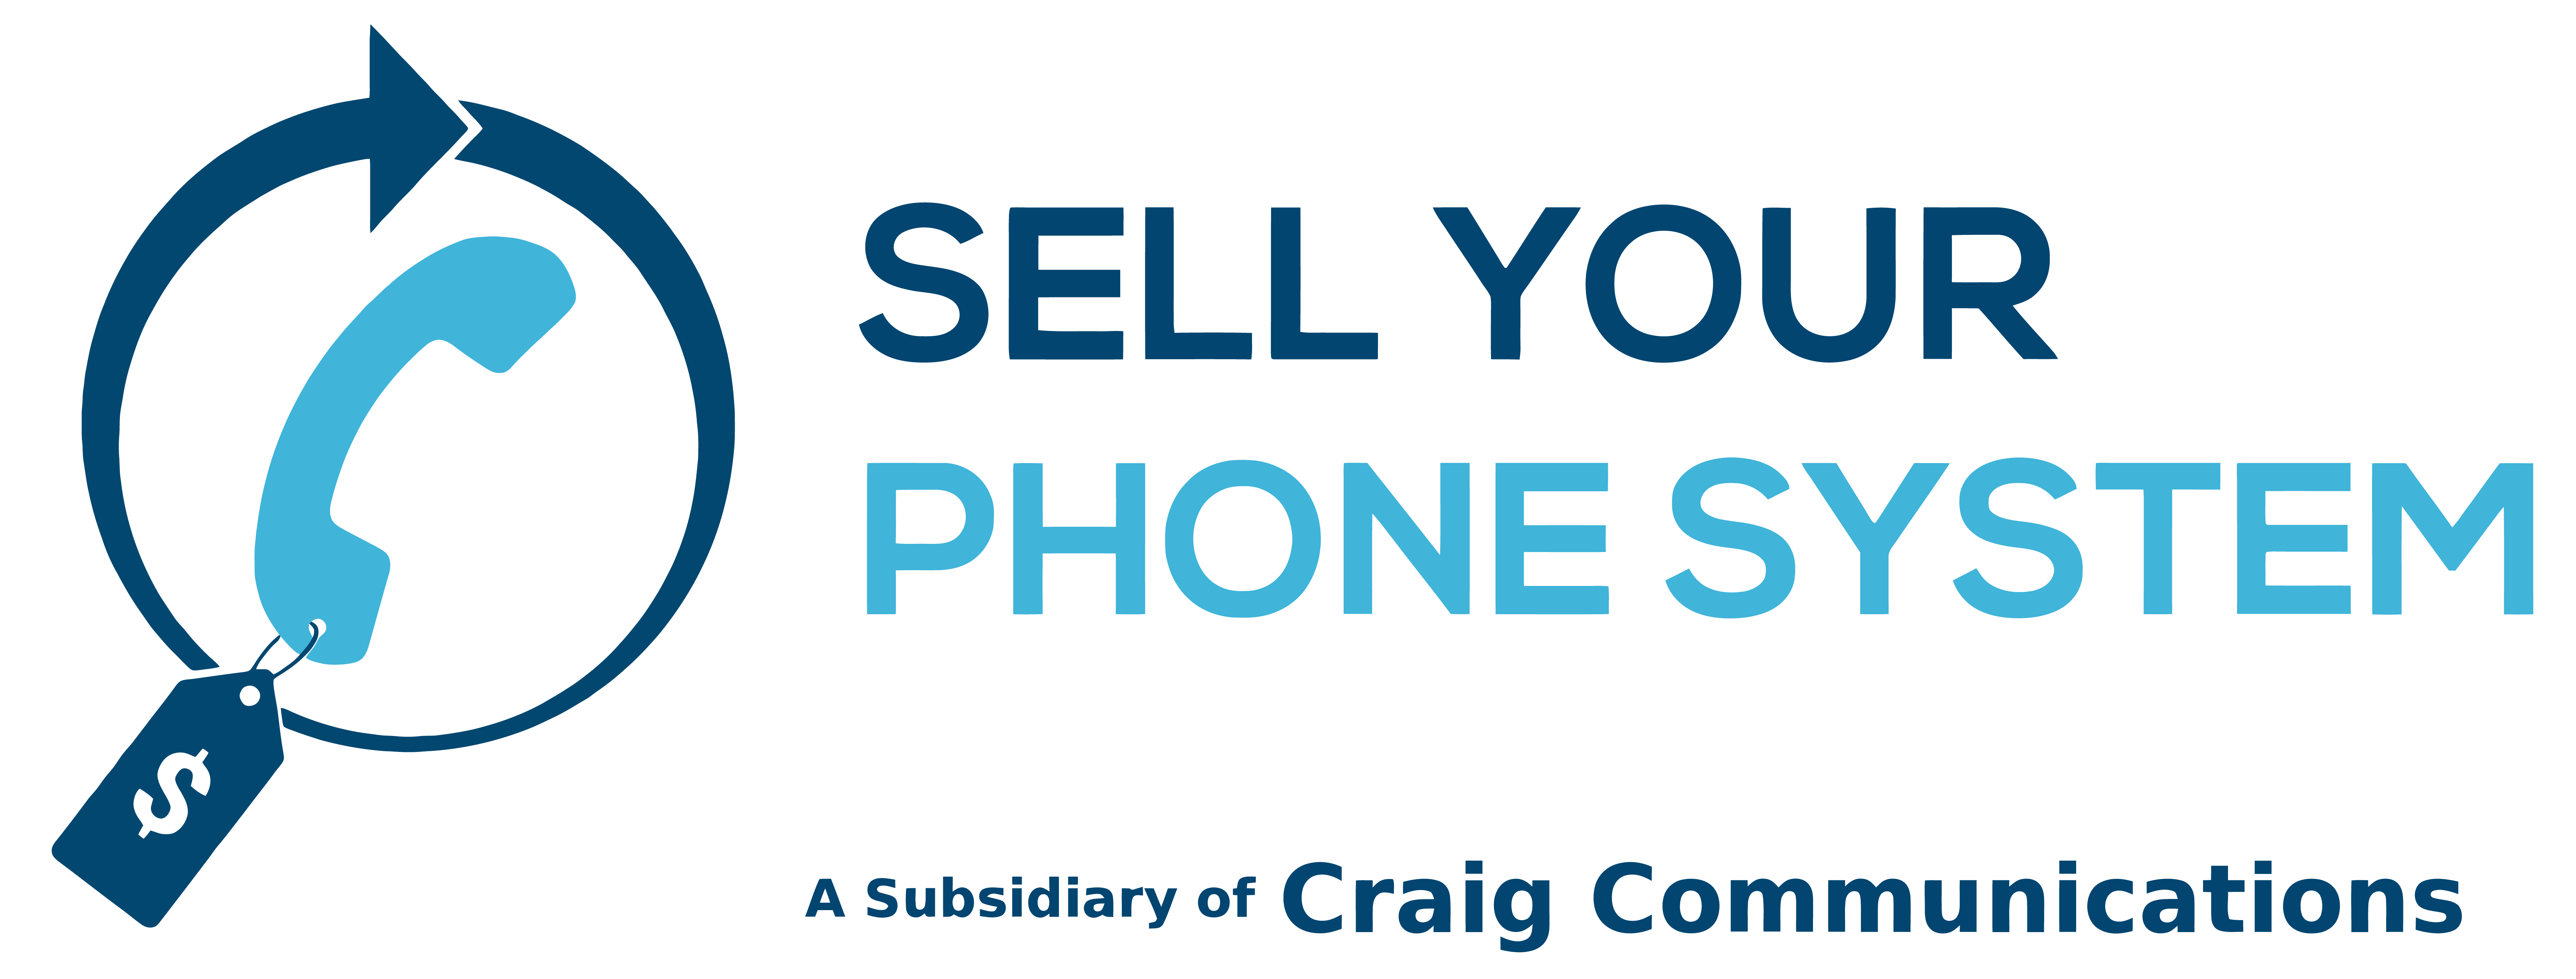 Sell Your Phone System